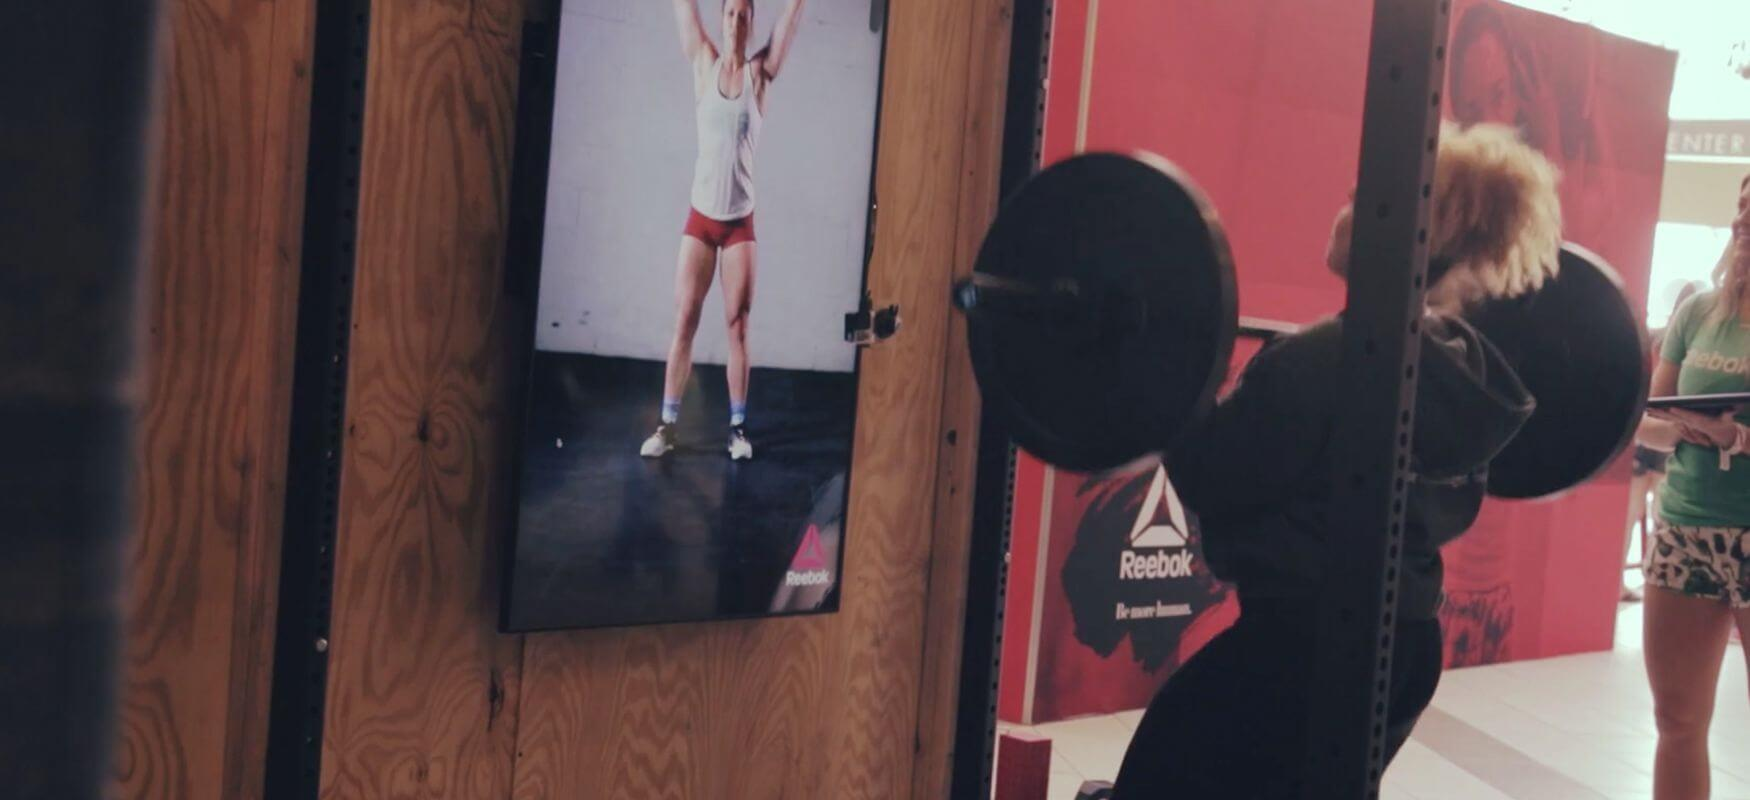 Reebok: Laying down a challenge for the CrossFit Community